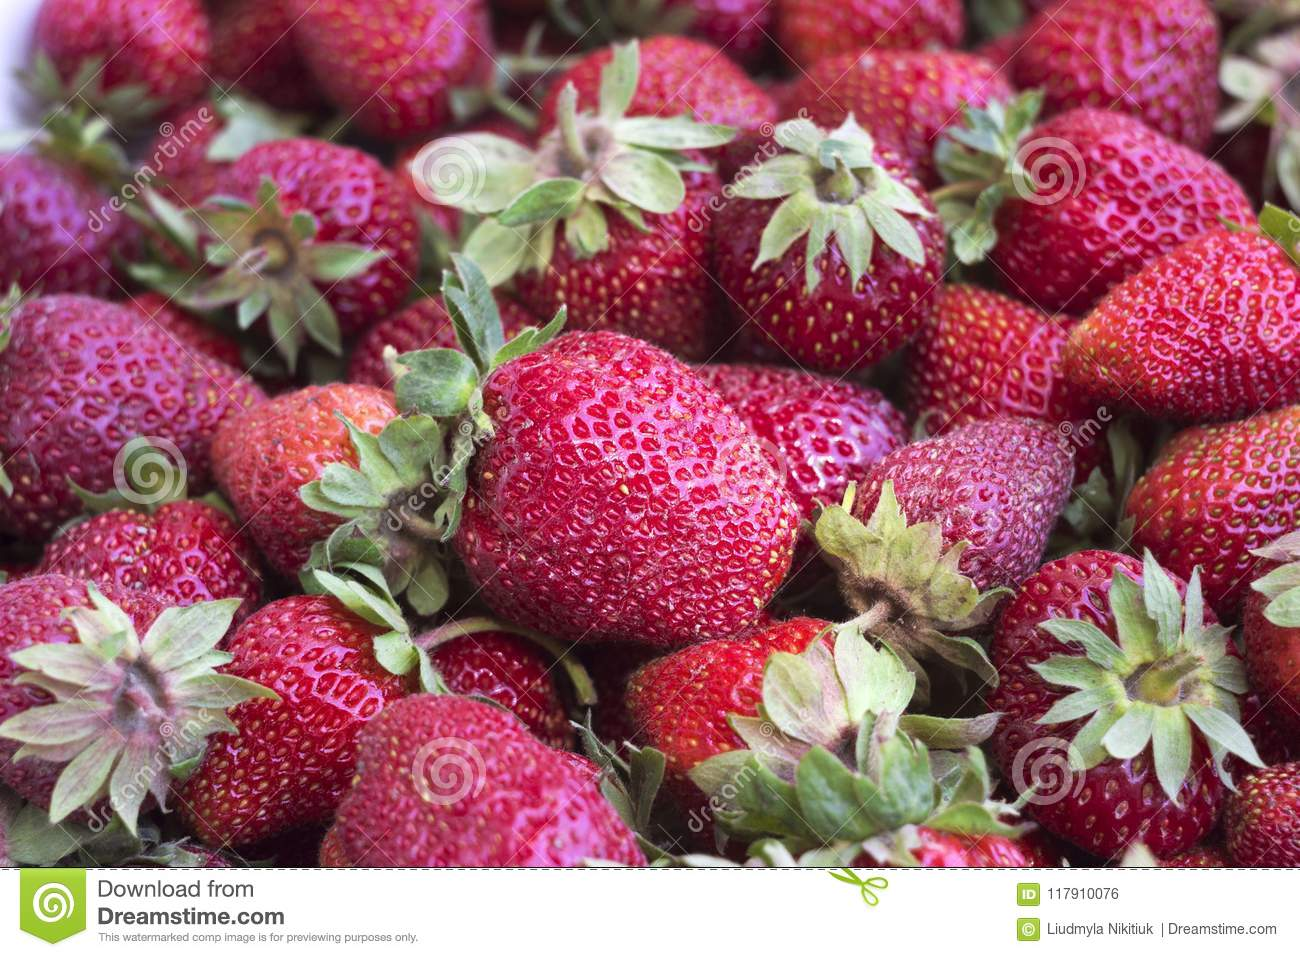 How are berries useful? 35